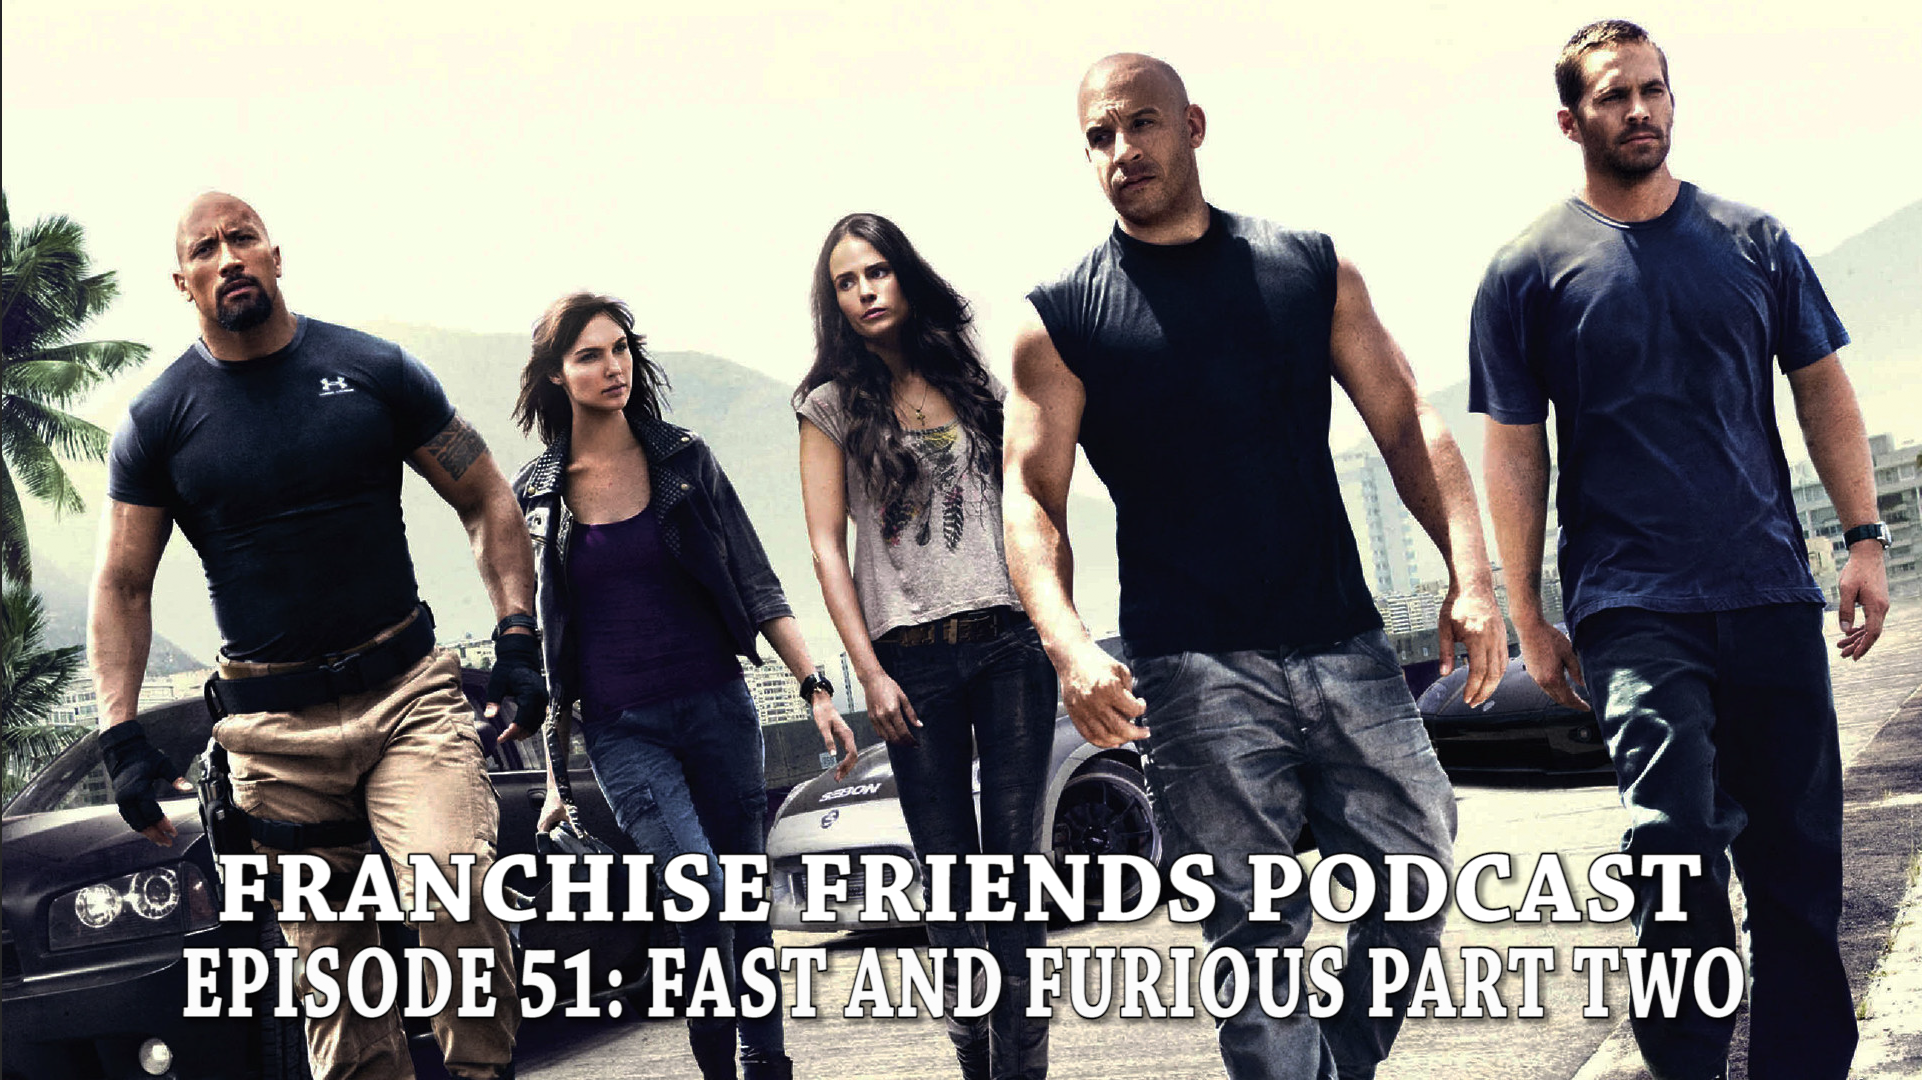 FAST AND FURIOUS FRANCHISE FRIENDS PODCAST